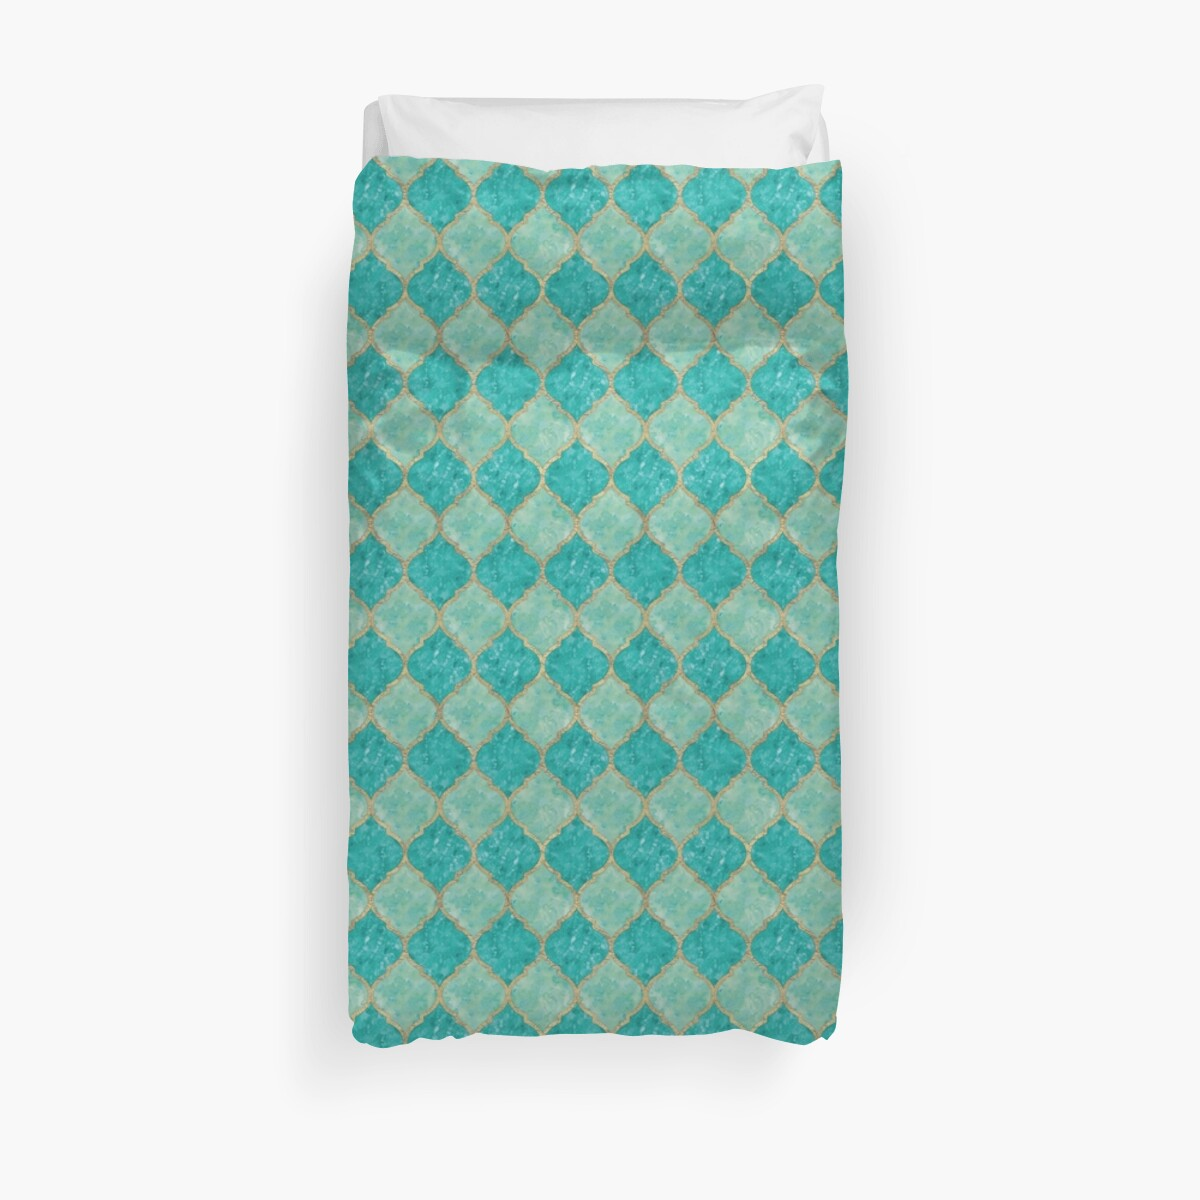 Moroccan Quatrefoil - Turquoise & Gold by mmmedia